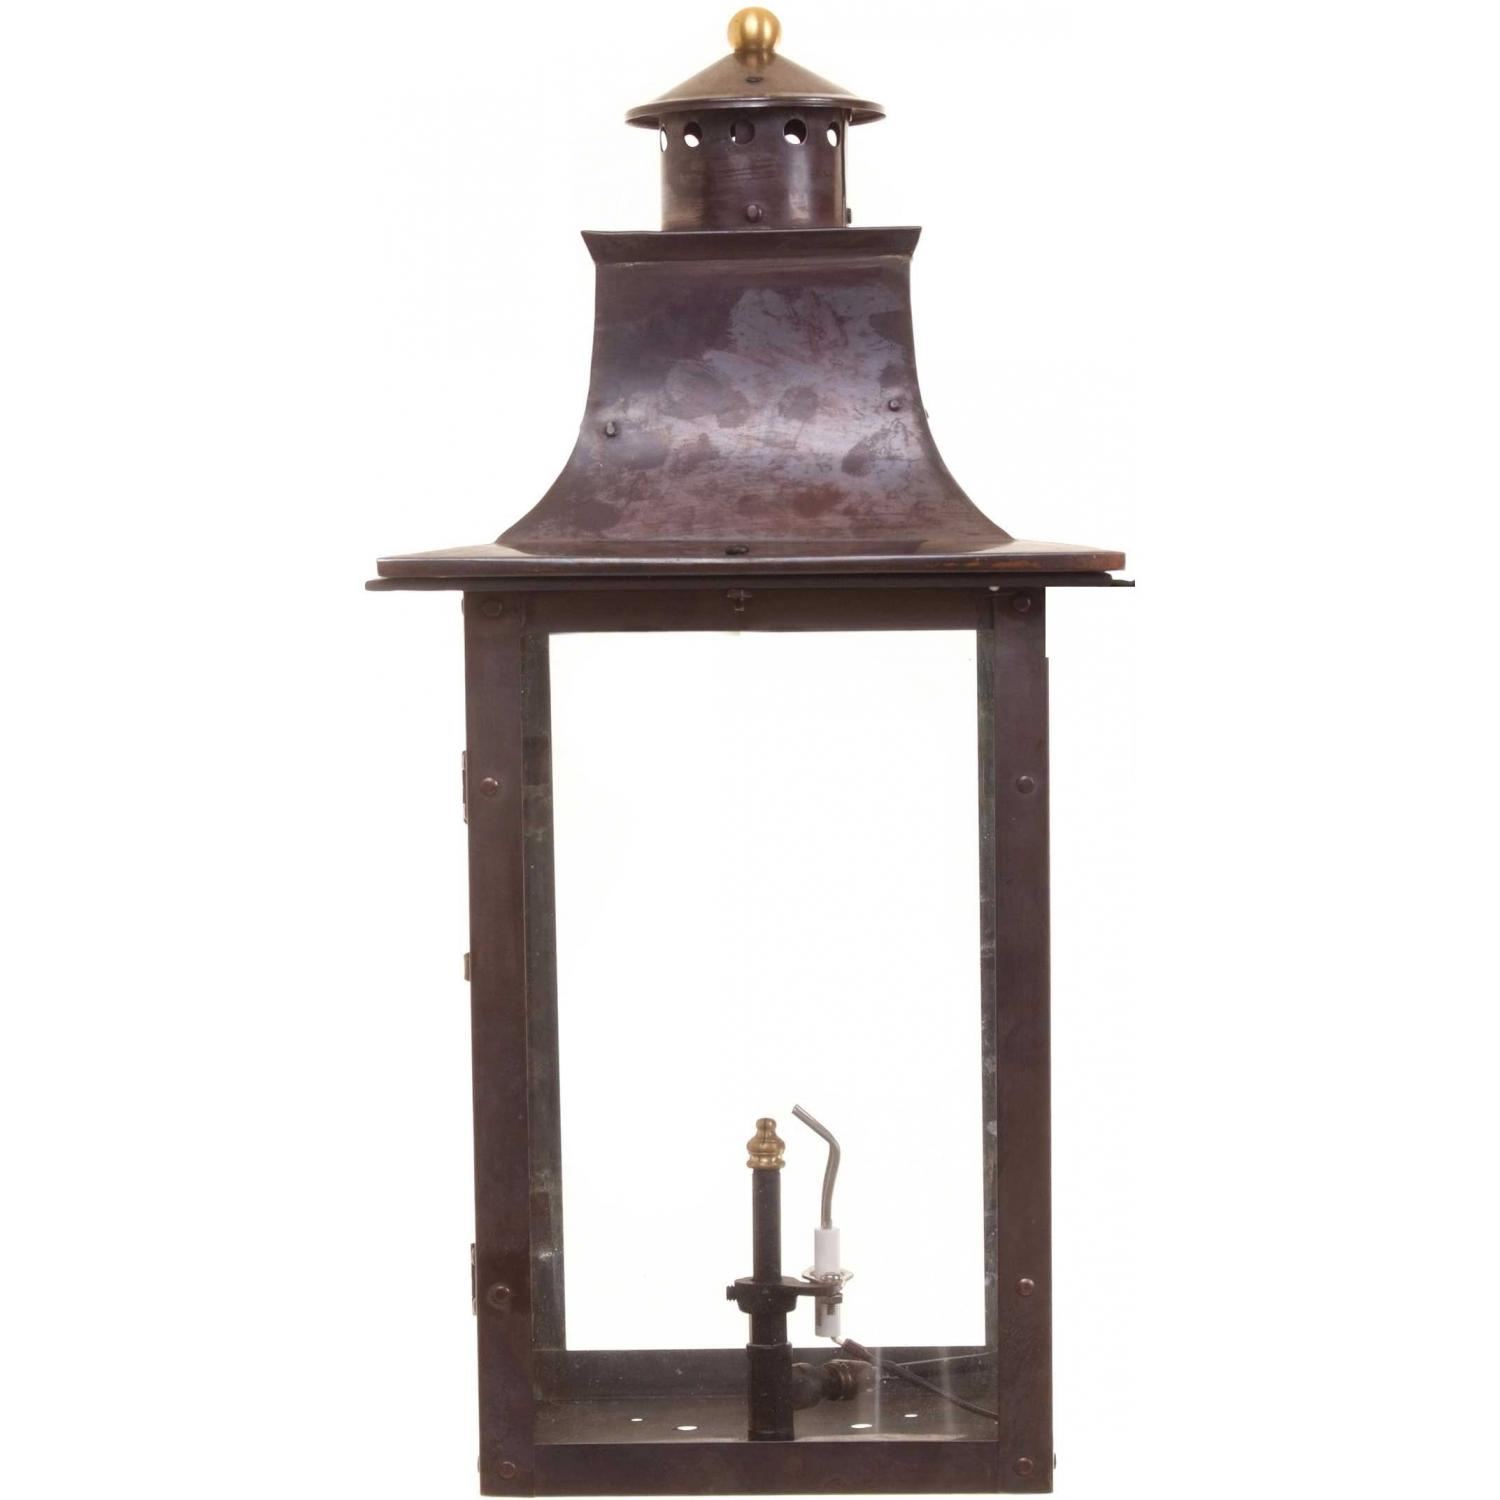 Regency GL21 Faye Rue Small Natural Gas Light With Open Flame Burner And Electronic Ignition For Post Mount